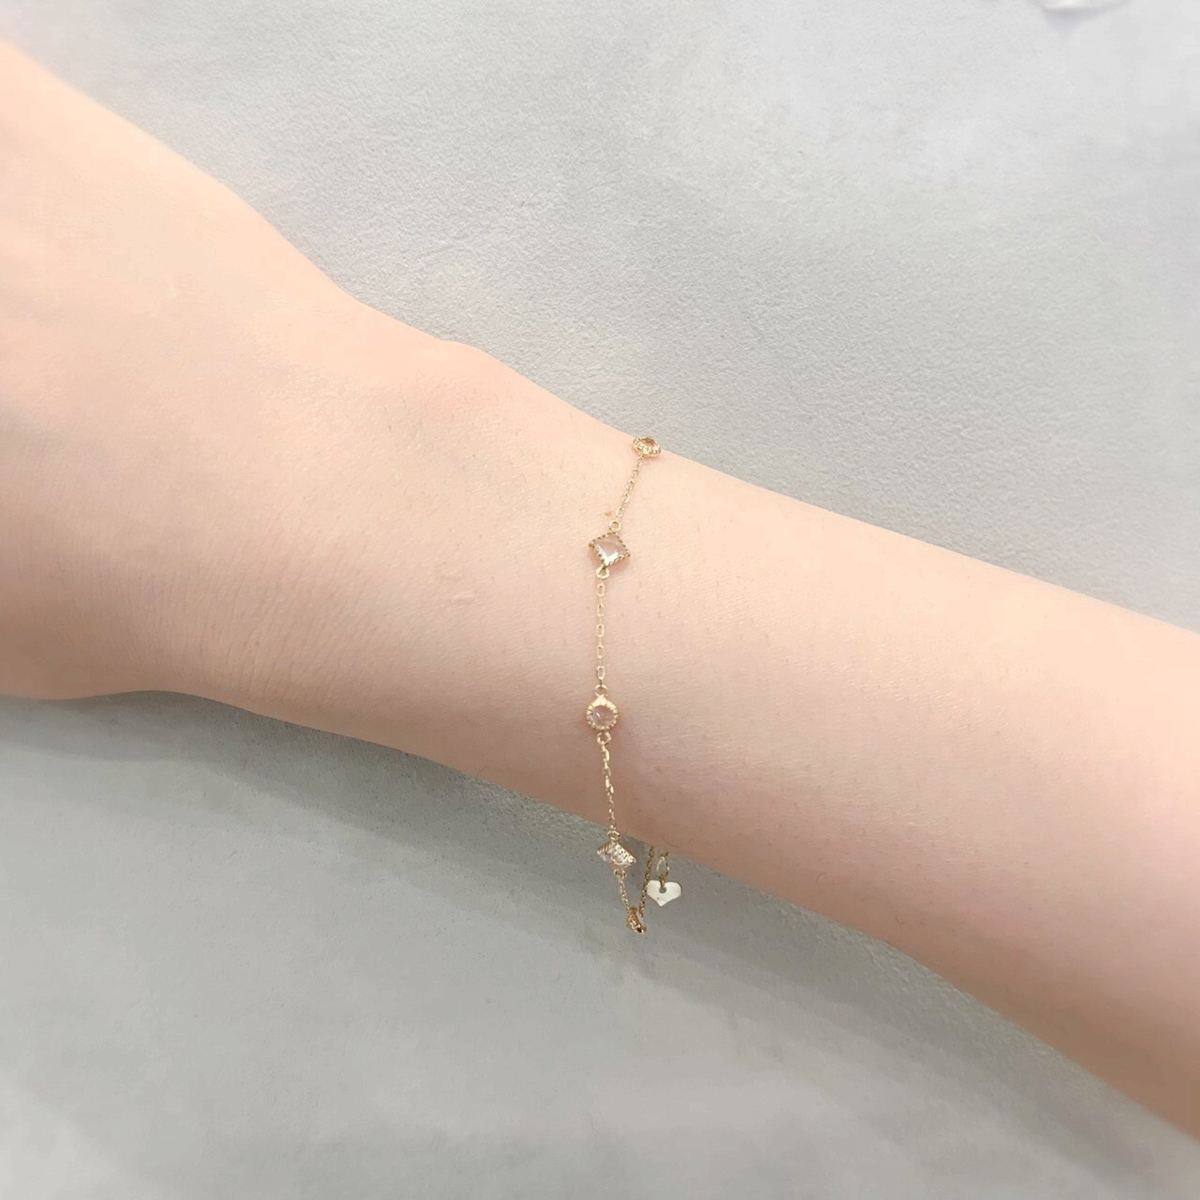 f:id:snow-jewelry-terrace:20190622155644j:plain